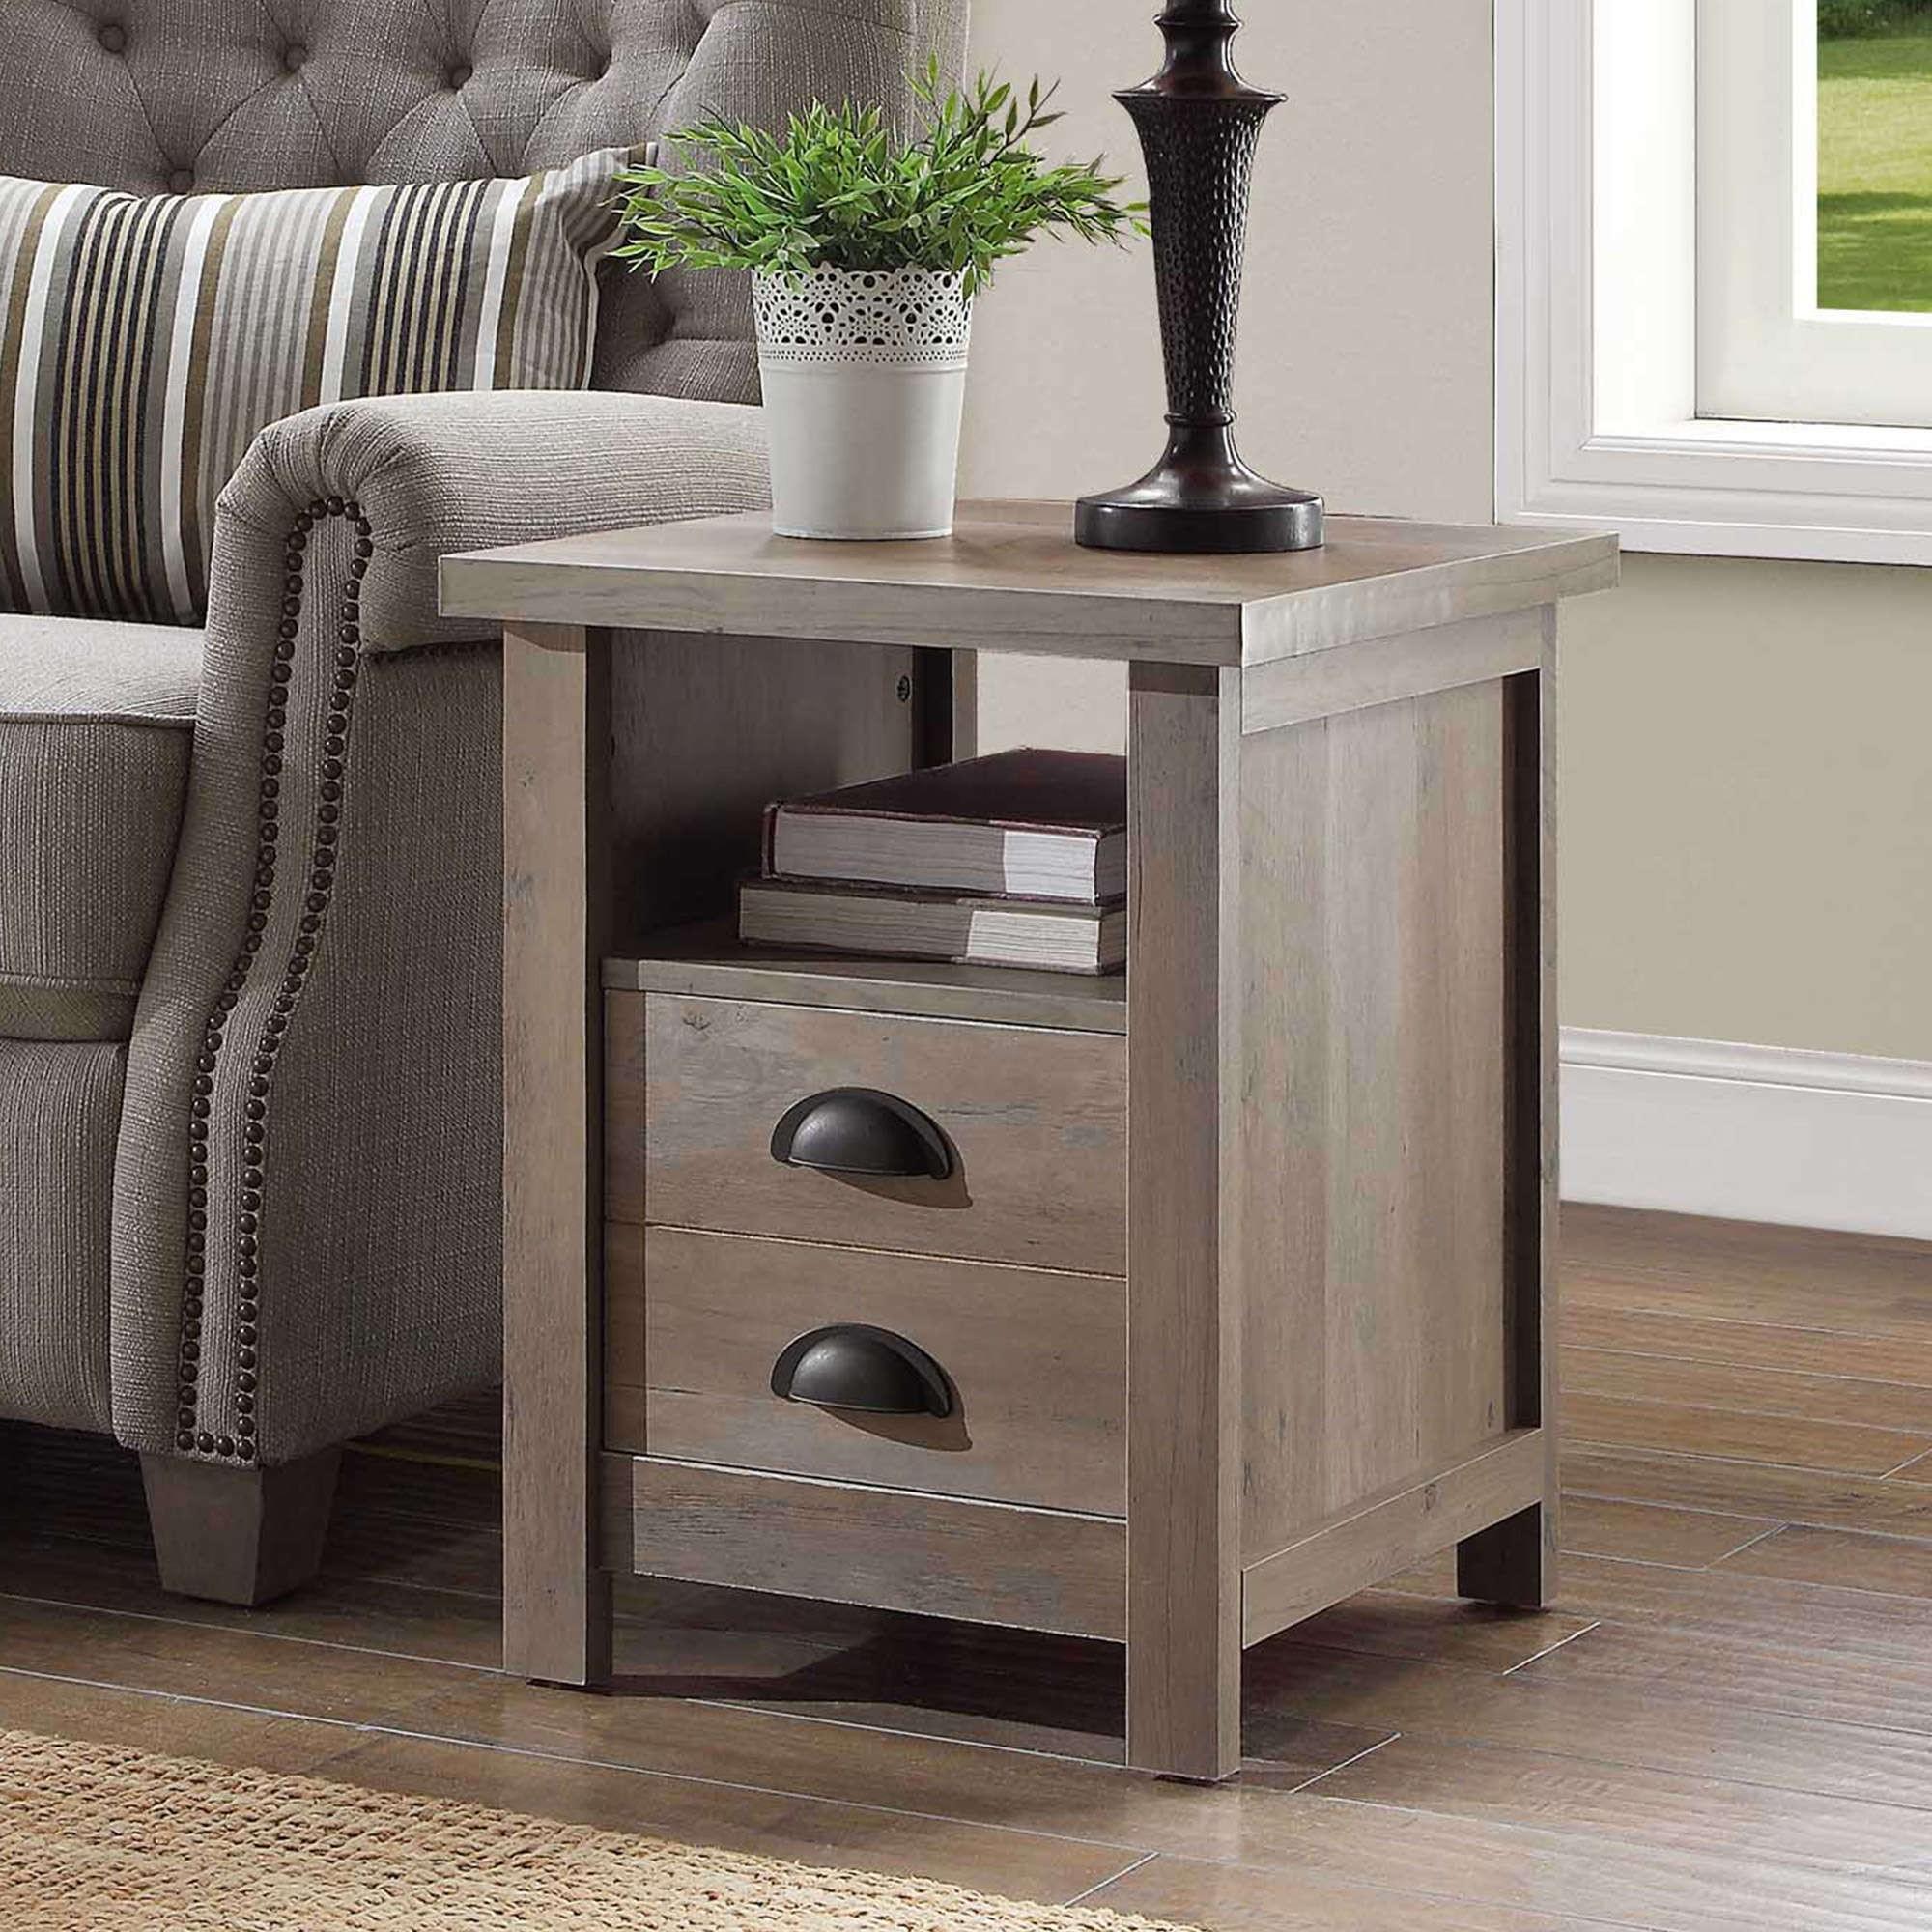 better homes and gardens granary modern farmhouse end table multiple finishes accent with drawer fire pit chairs small wood metal coffee target threshold marble oblong tablecloth